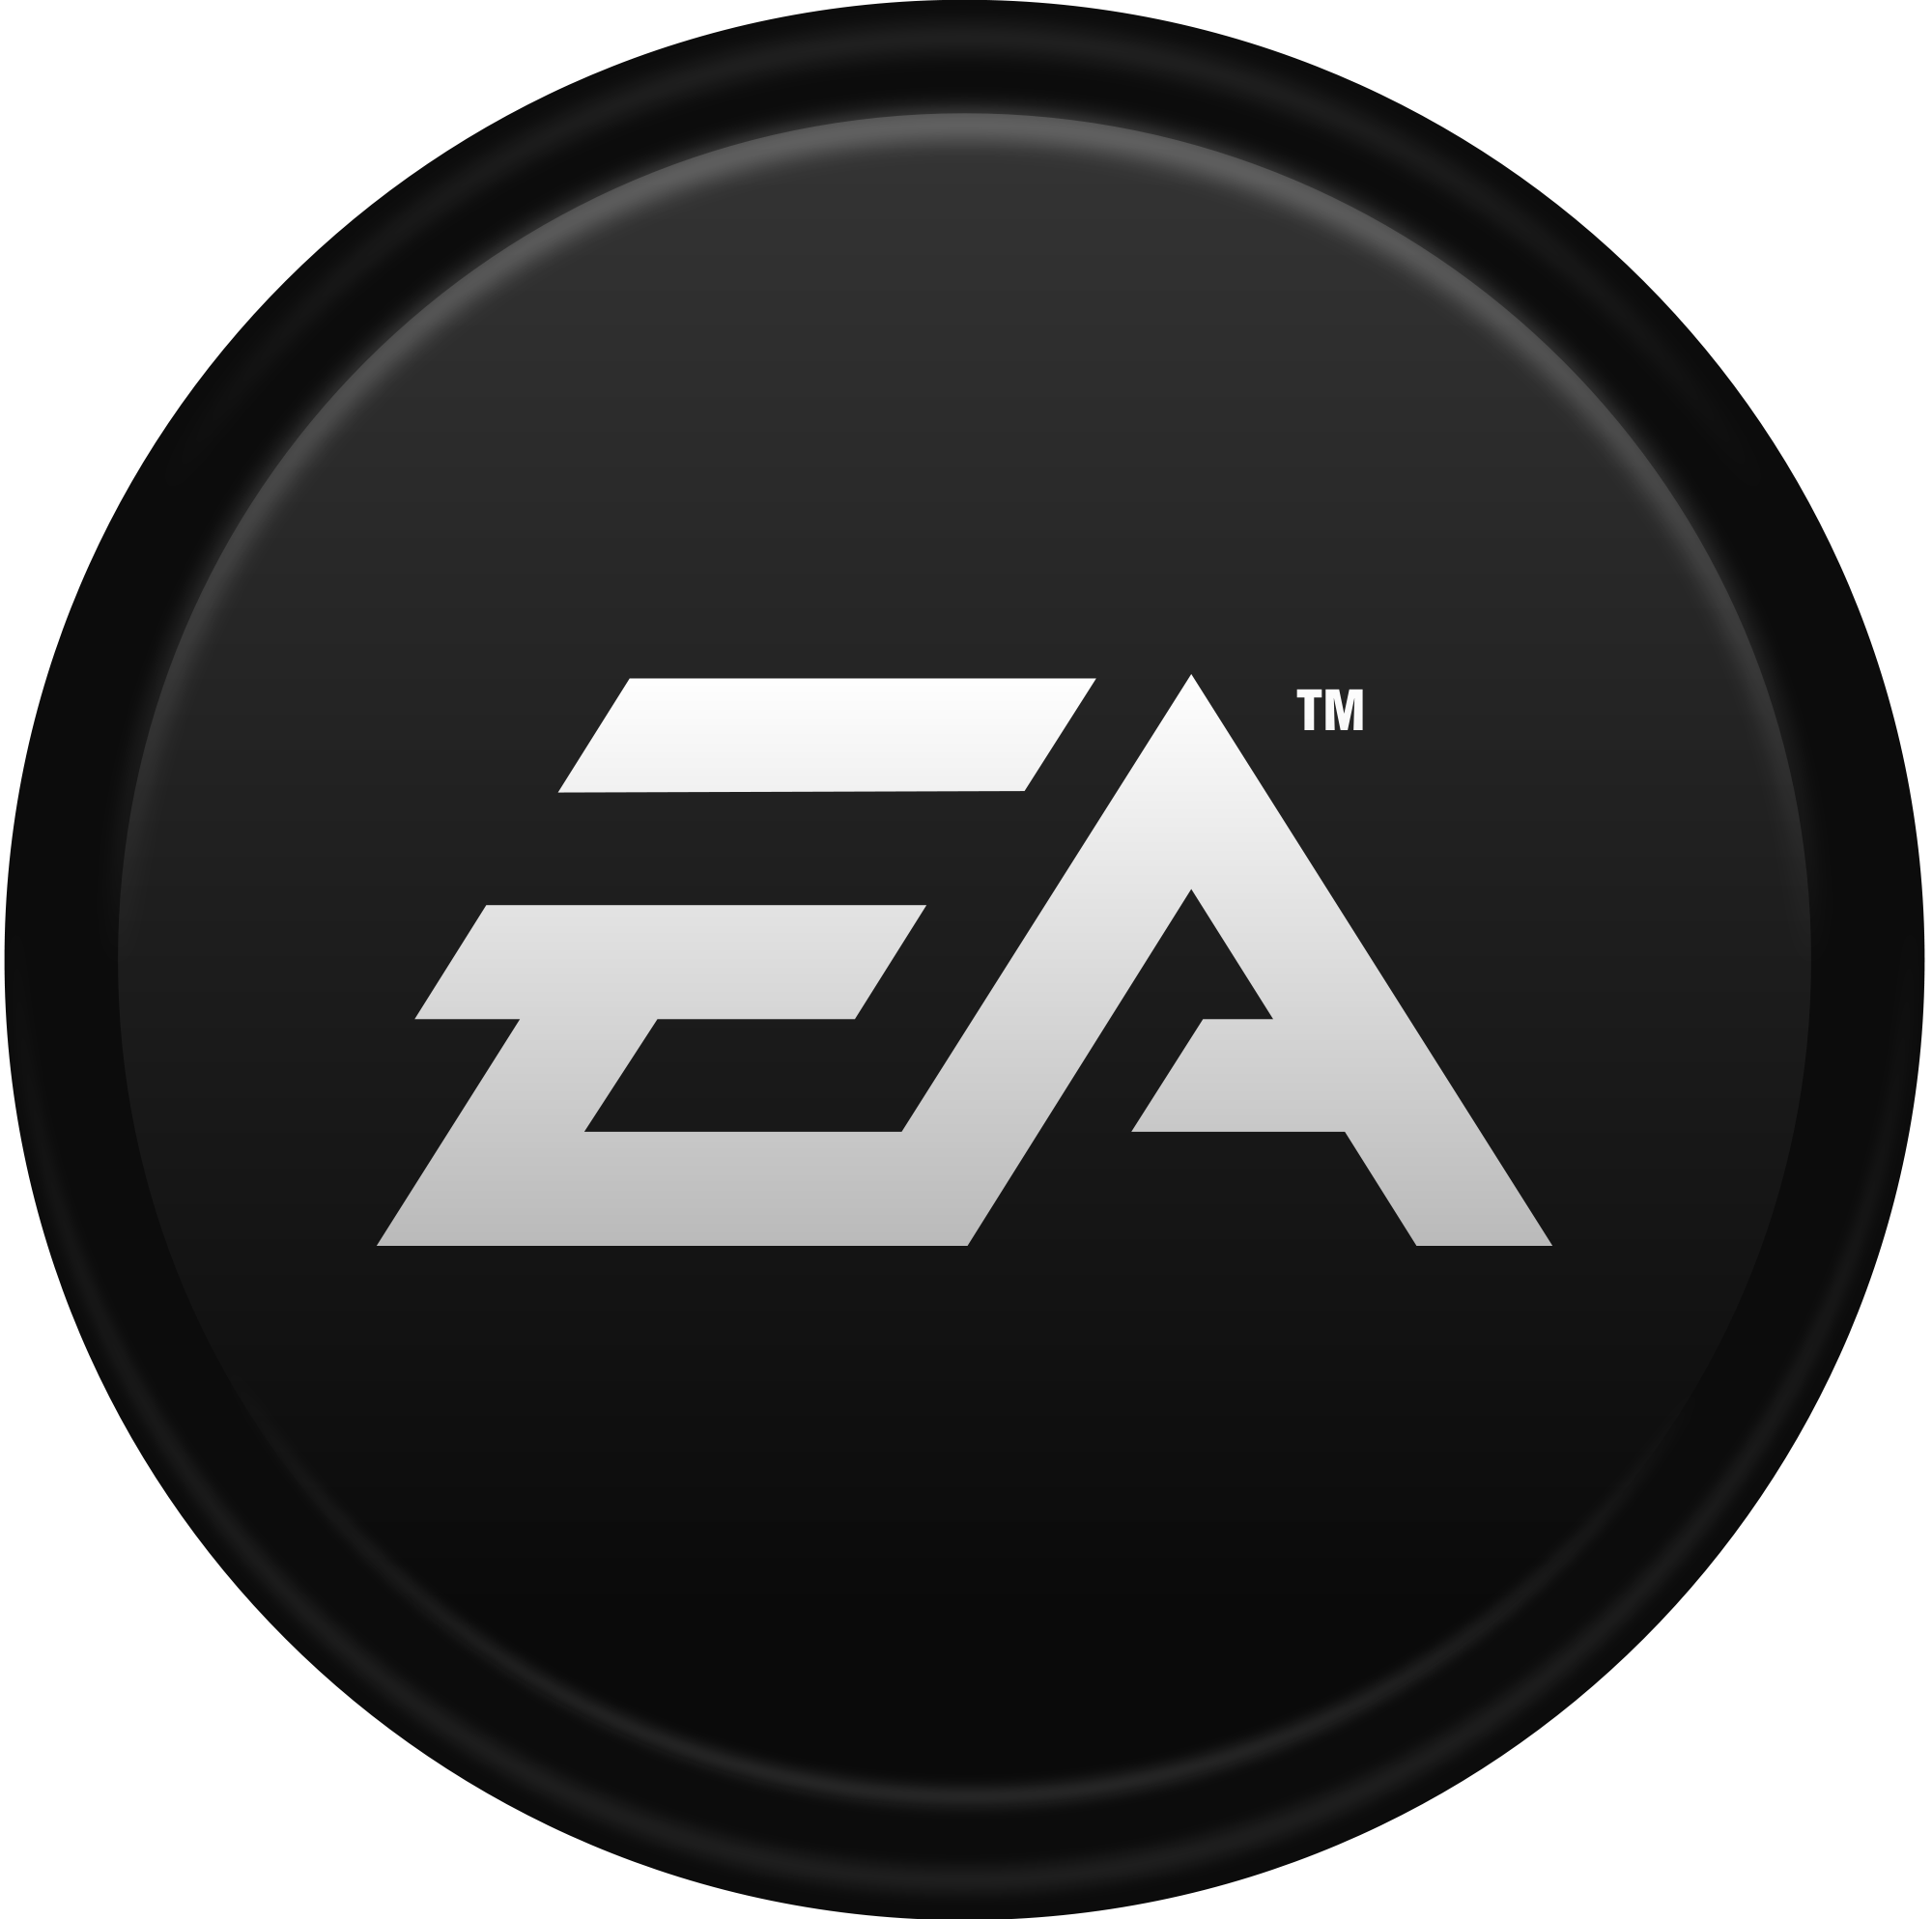 Download electronic arts logo